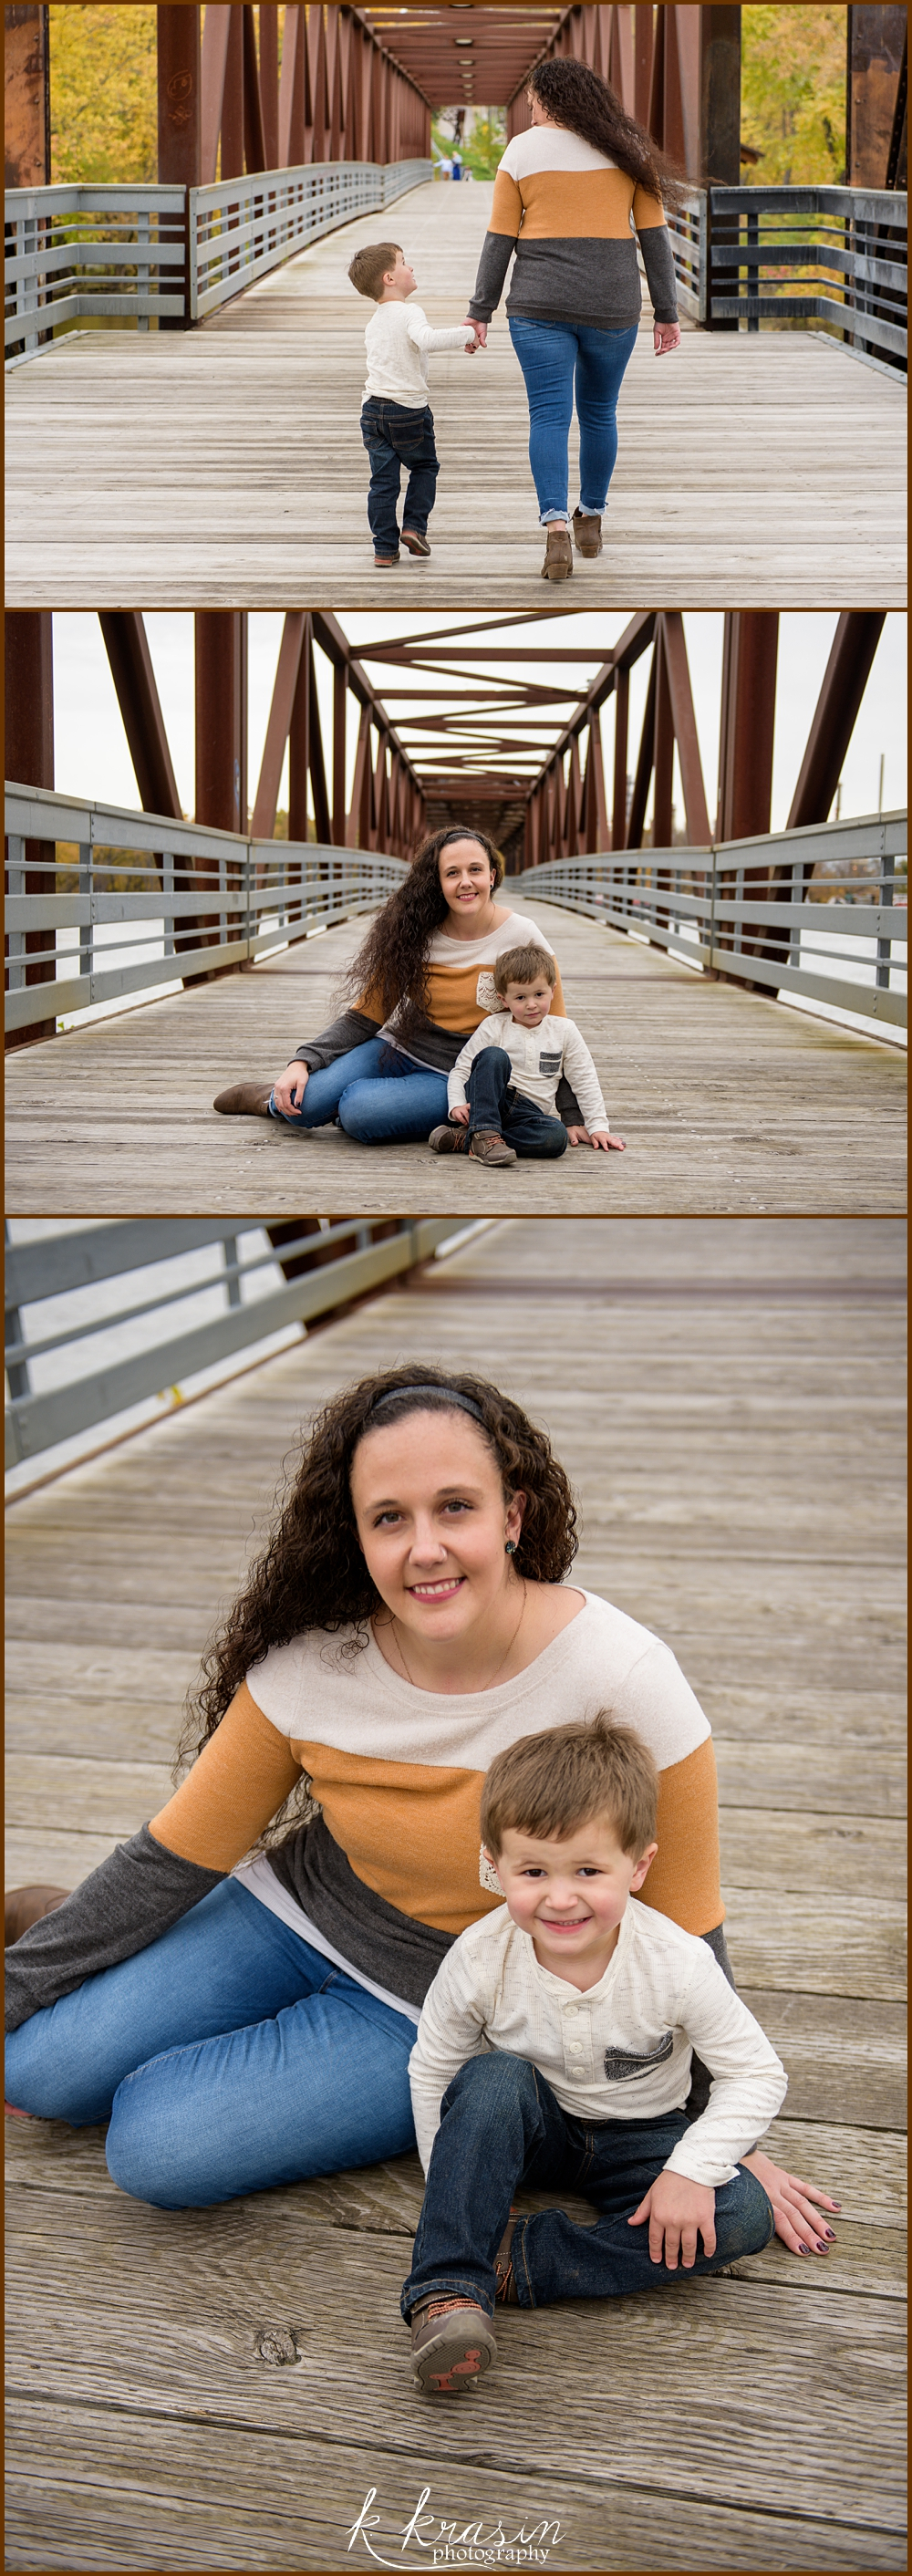 Collage of photos of mom and son walking and sitting on pier